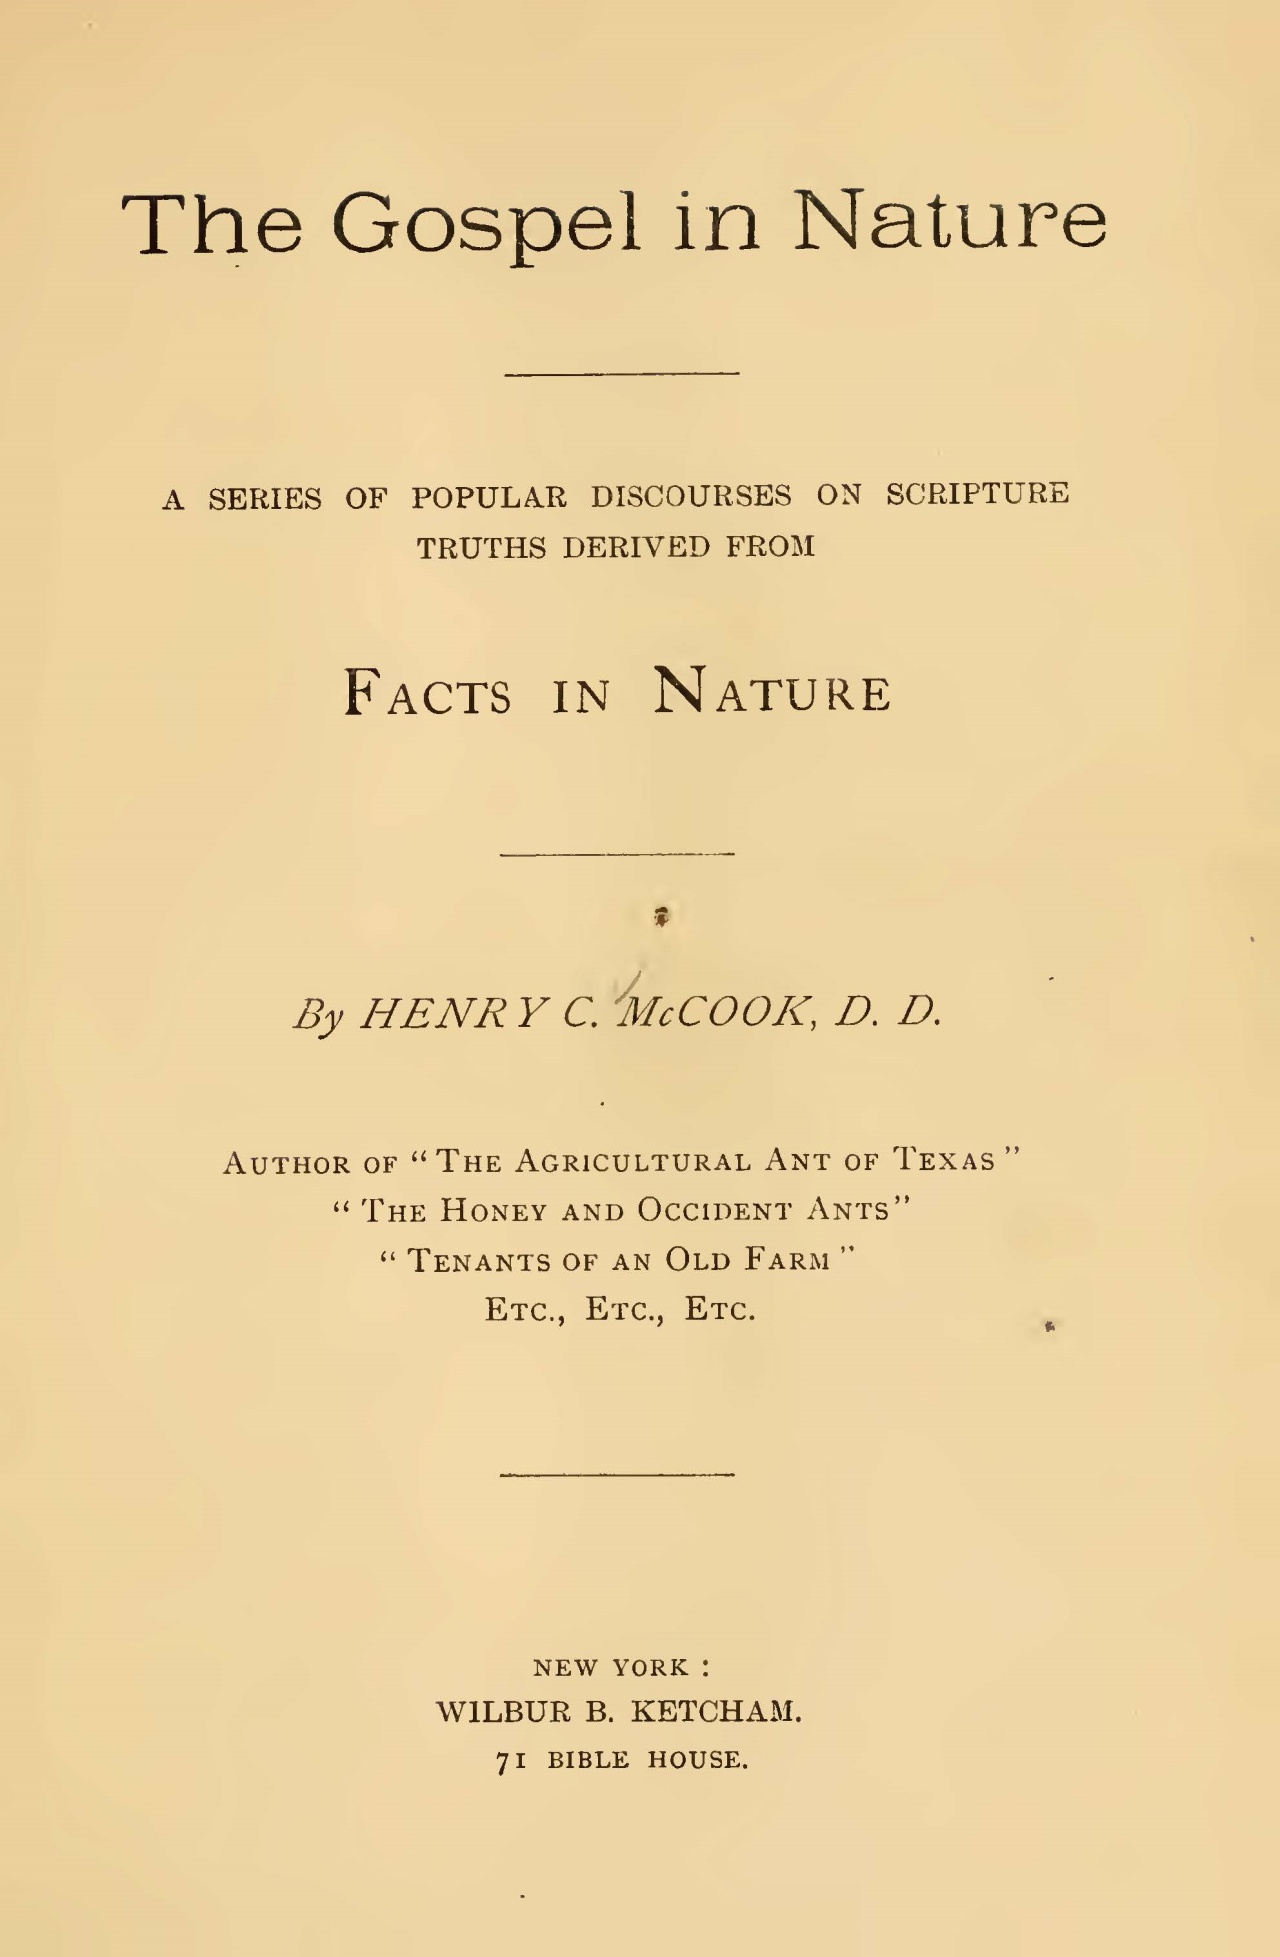 McCook, Henry Christopher, The Gospel in Nature Title Page.jpg